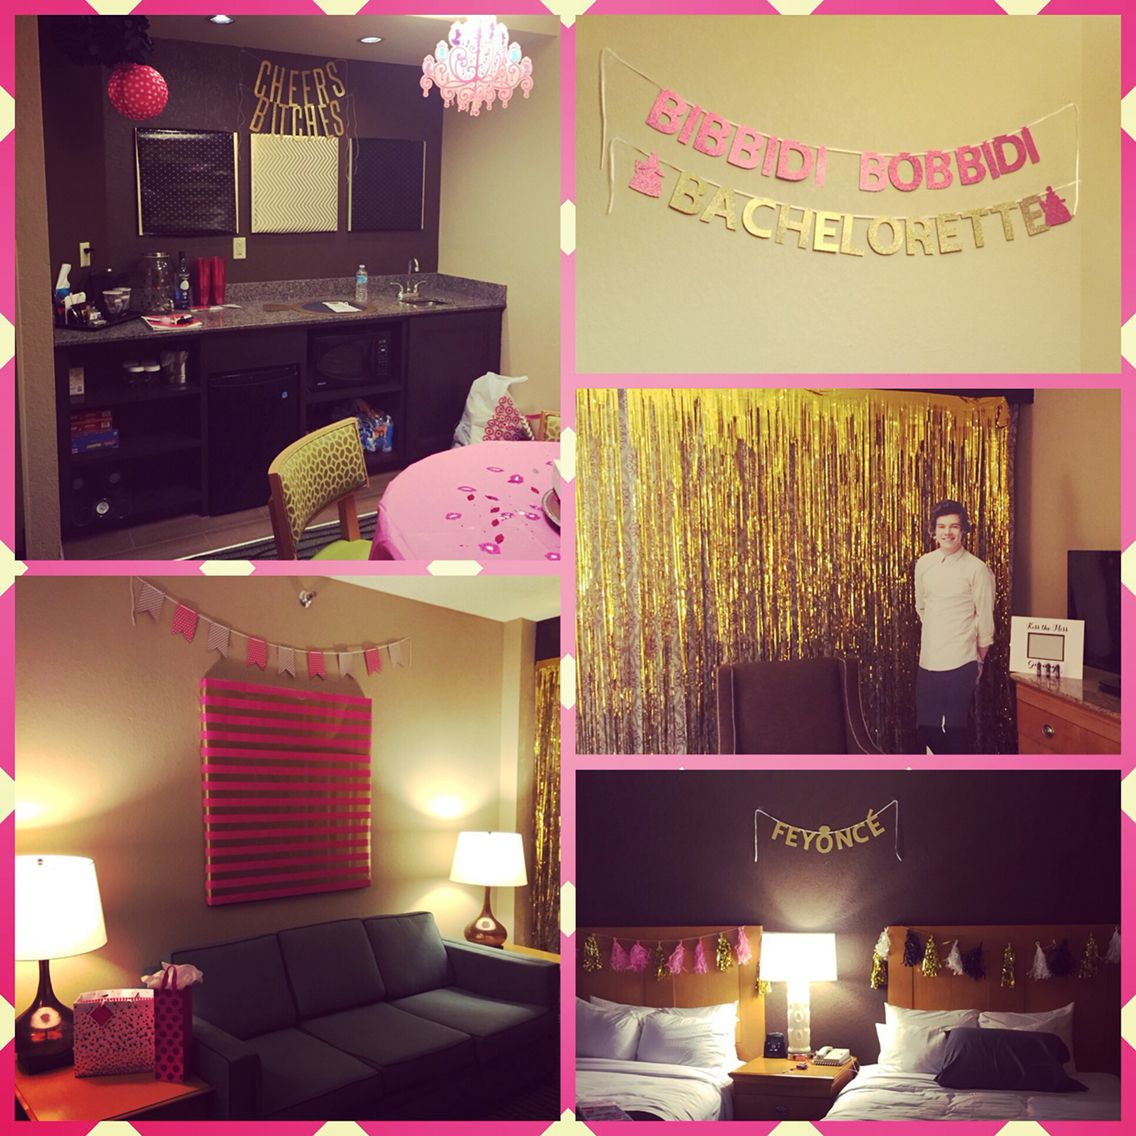 Bachelorette Girly Bedroom: Hotel Room Decorated For A Bachelorette Party